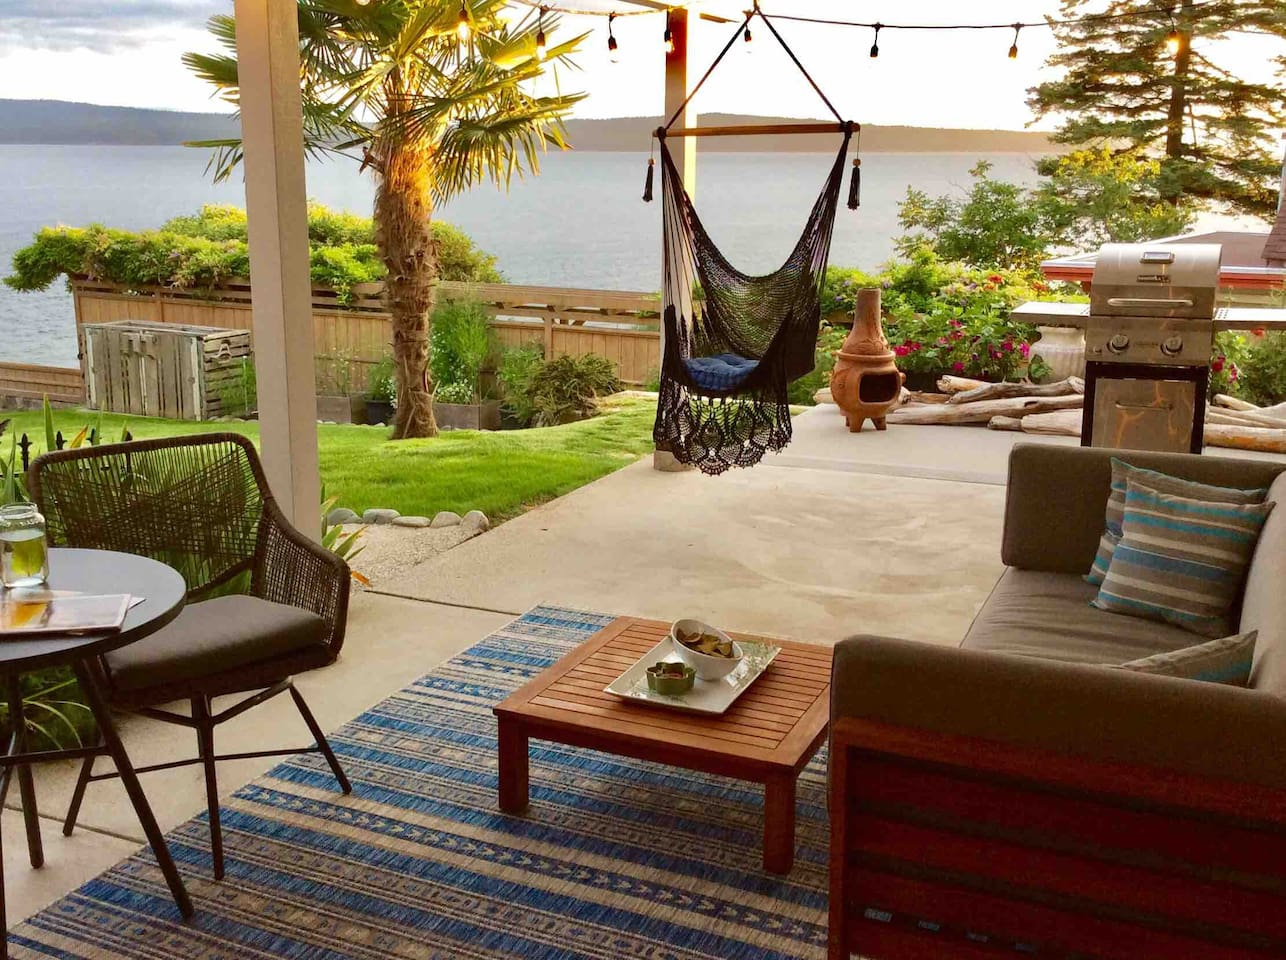 Private patio with BBQ and comfortable seating.